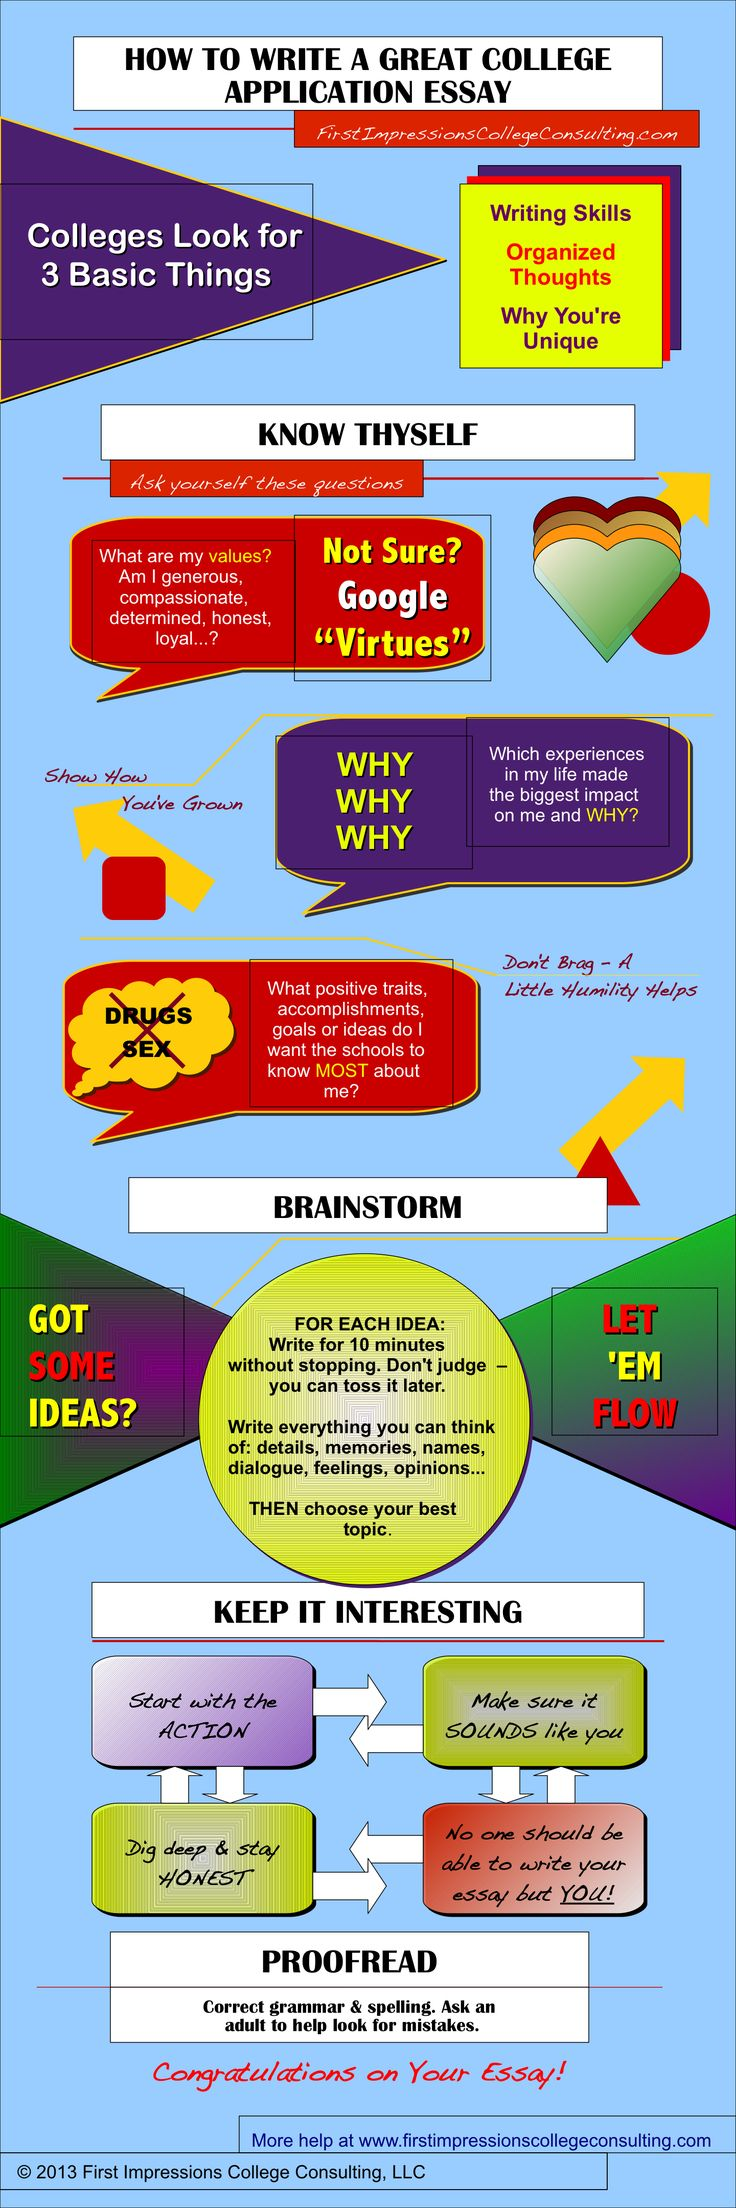 best images about college application essays here it is my first infographic i won t tell you how long it took me but it was worth it enjoy sharon epstein is owner of first impressions college